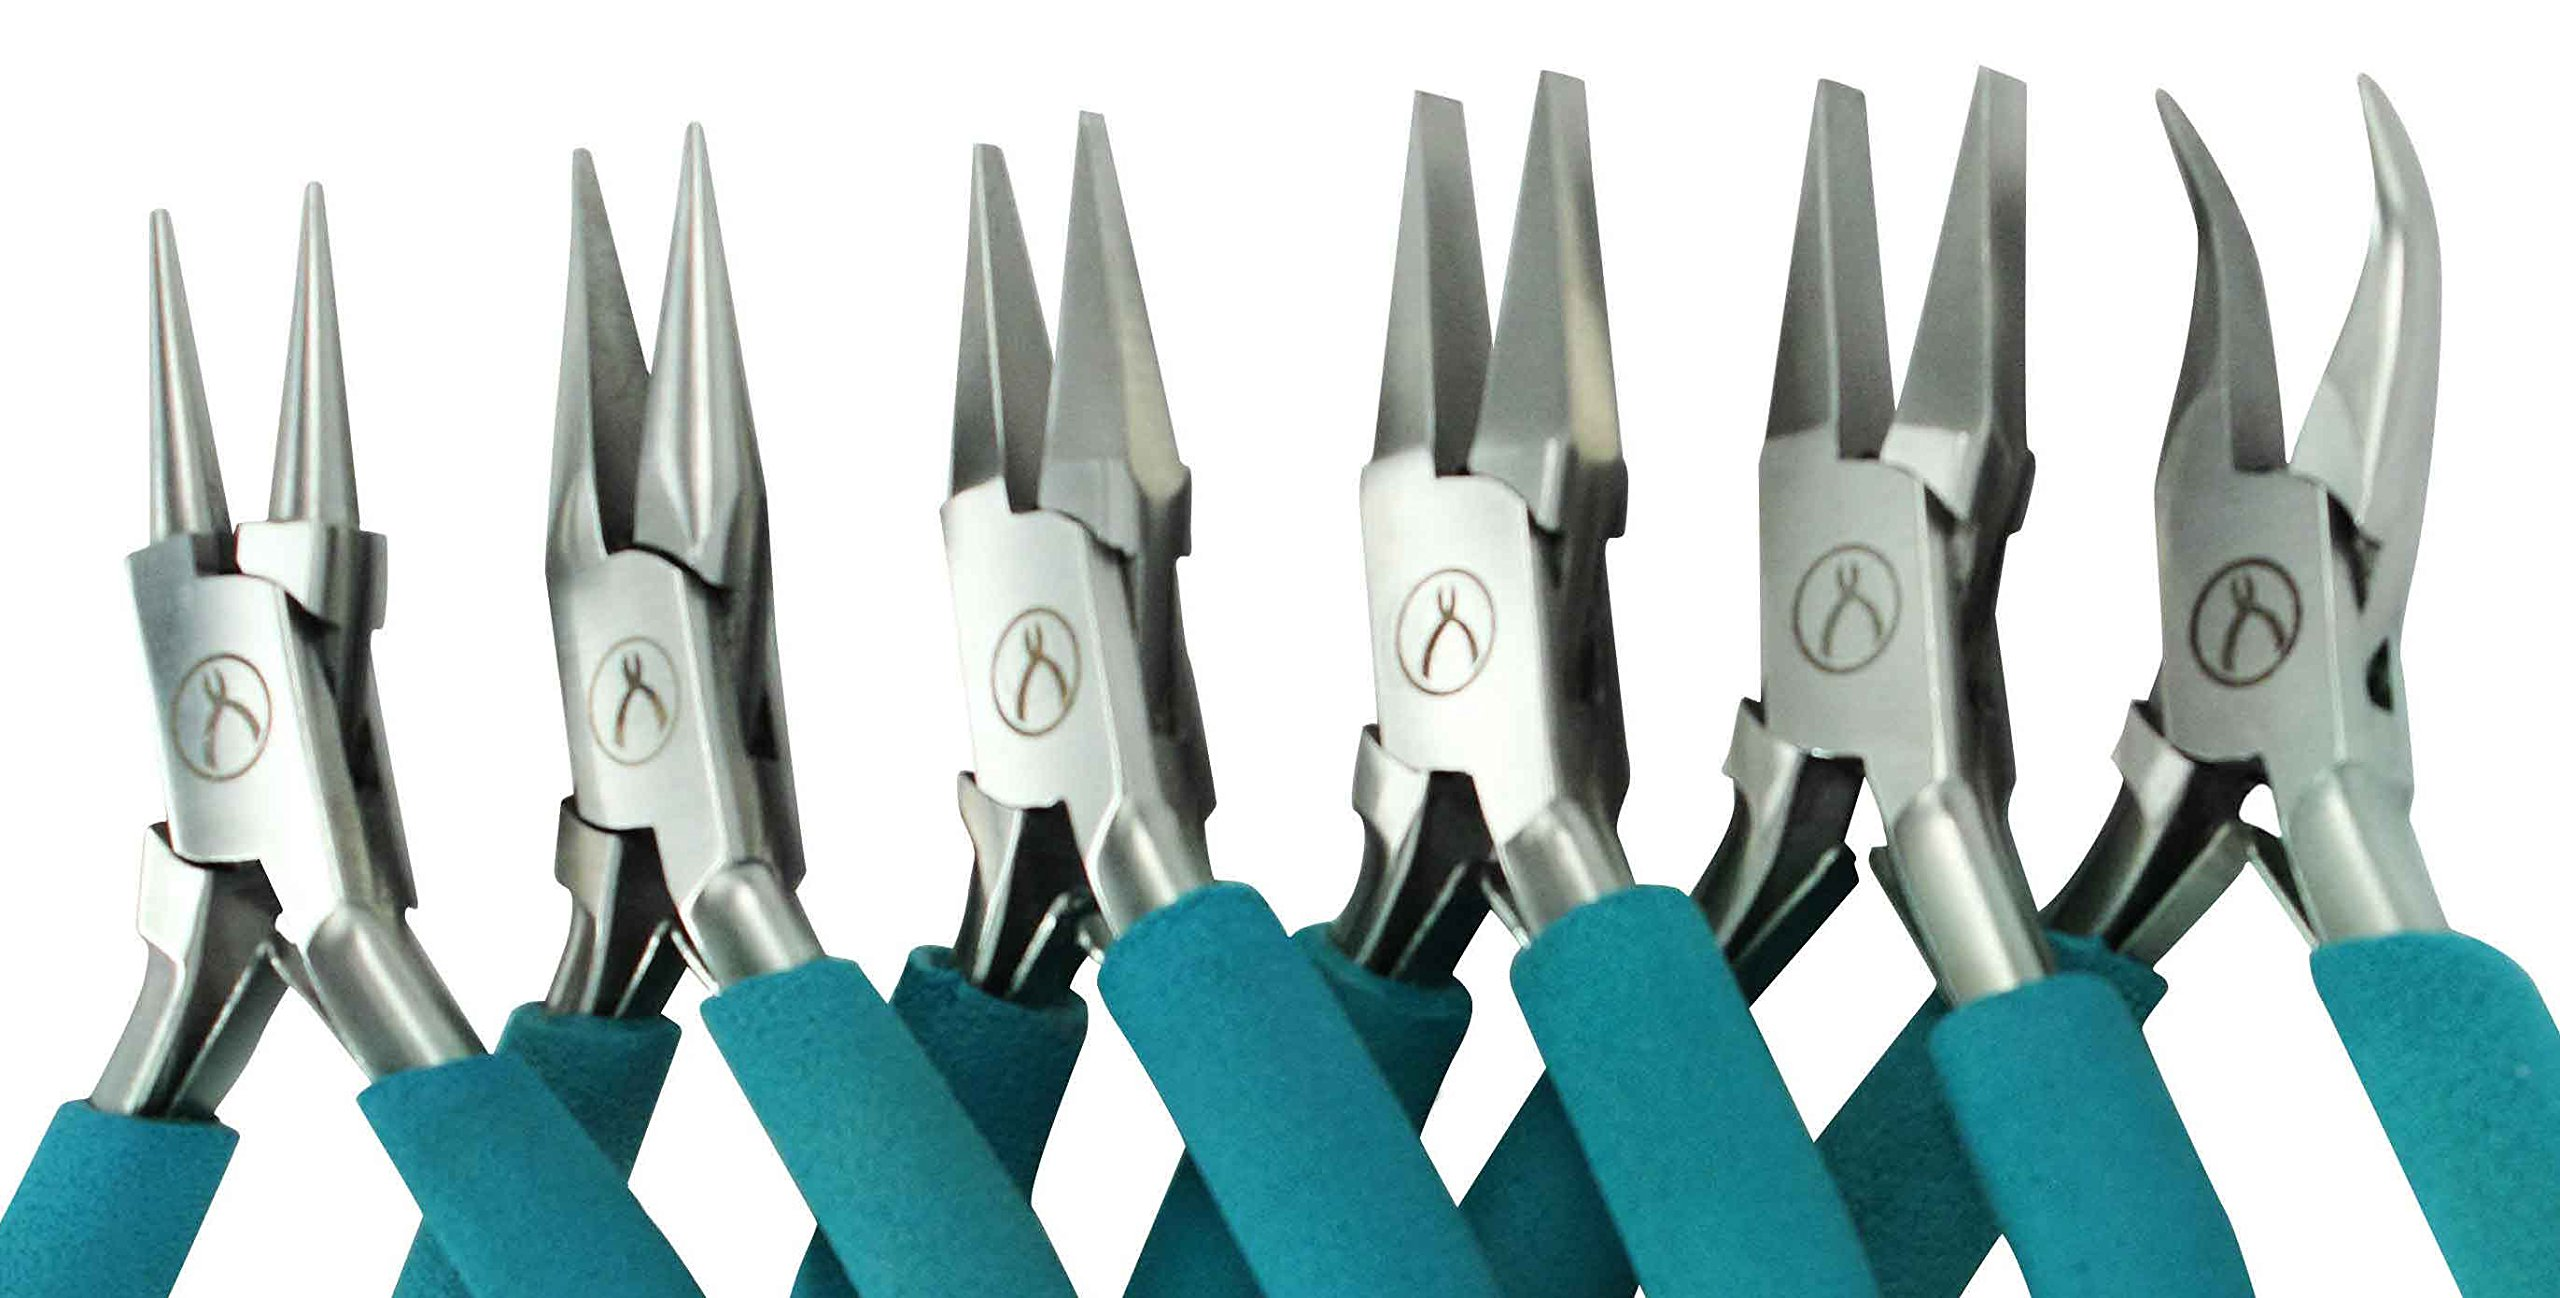 Wubbers Classic Pliers, Set with Round Nose, Narrow Flat Nose, Medium Flat Nose, Wide Flat Nose, Chain Nose, and Bent Chain Nose Pliers, with Plier Care Article by Jewelry Artist Charlene Anderson